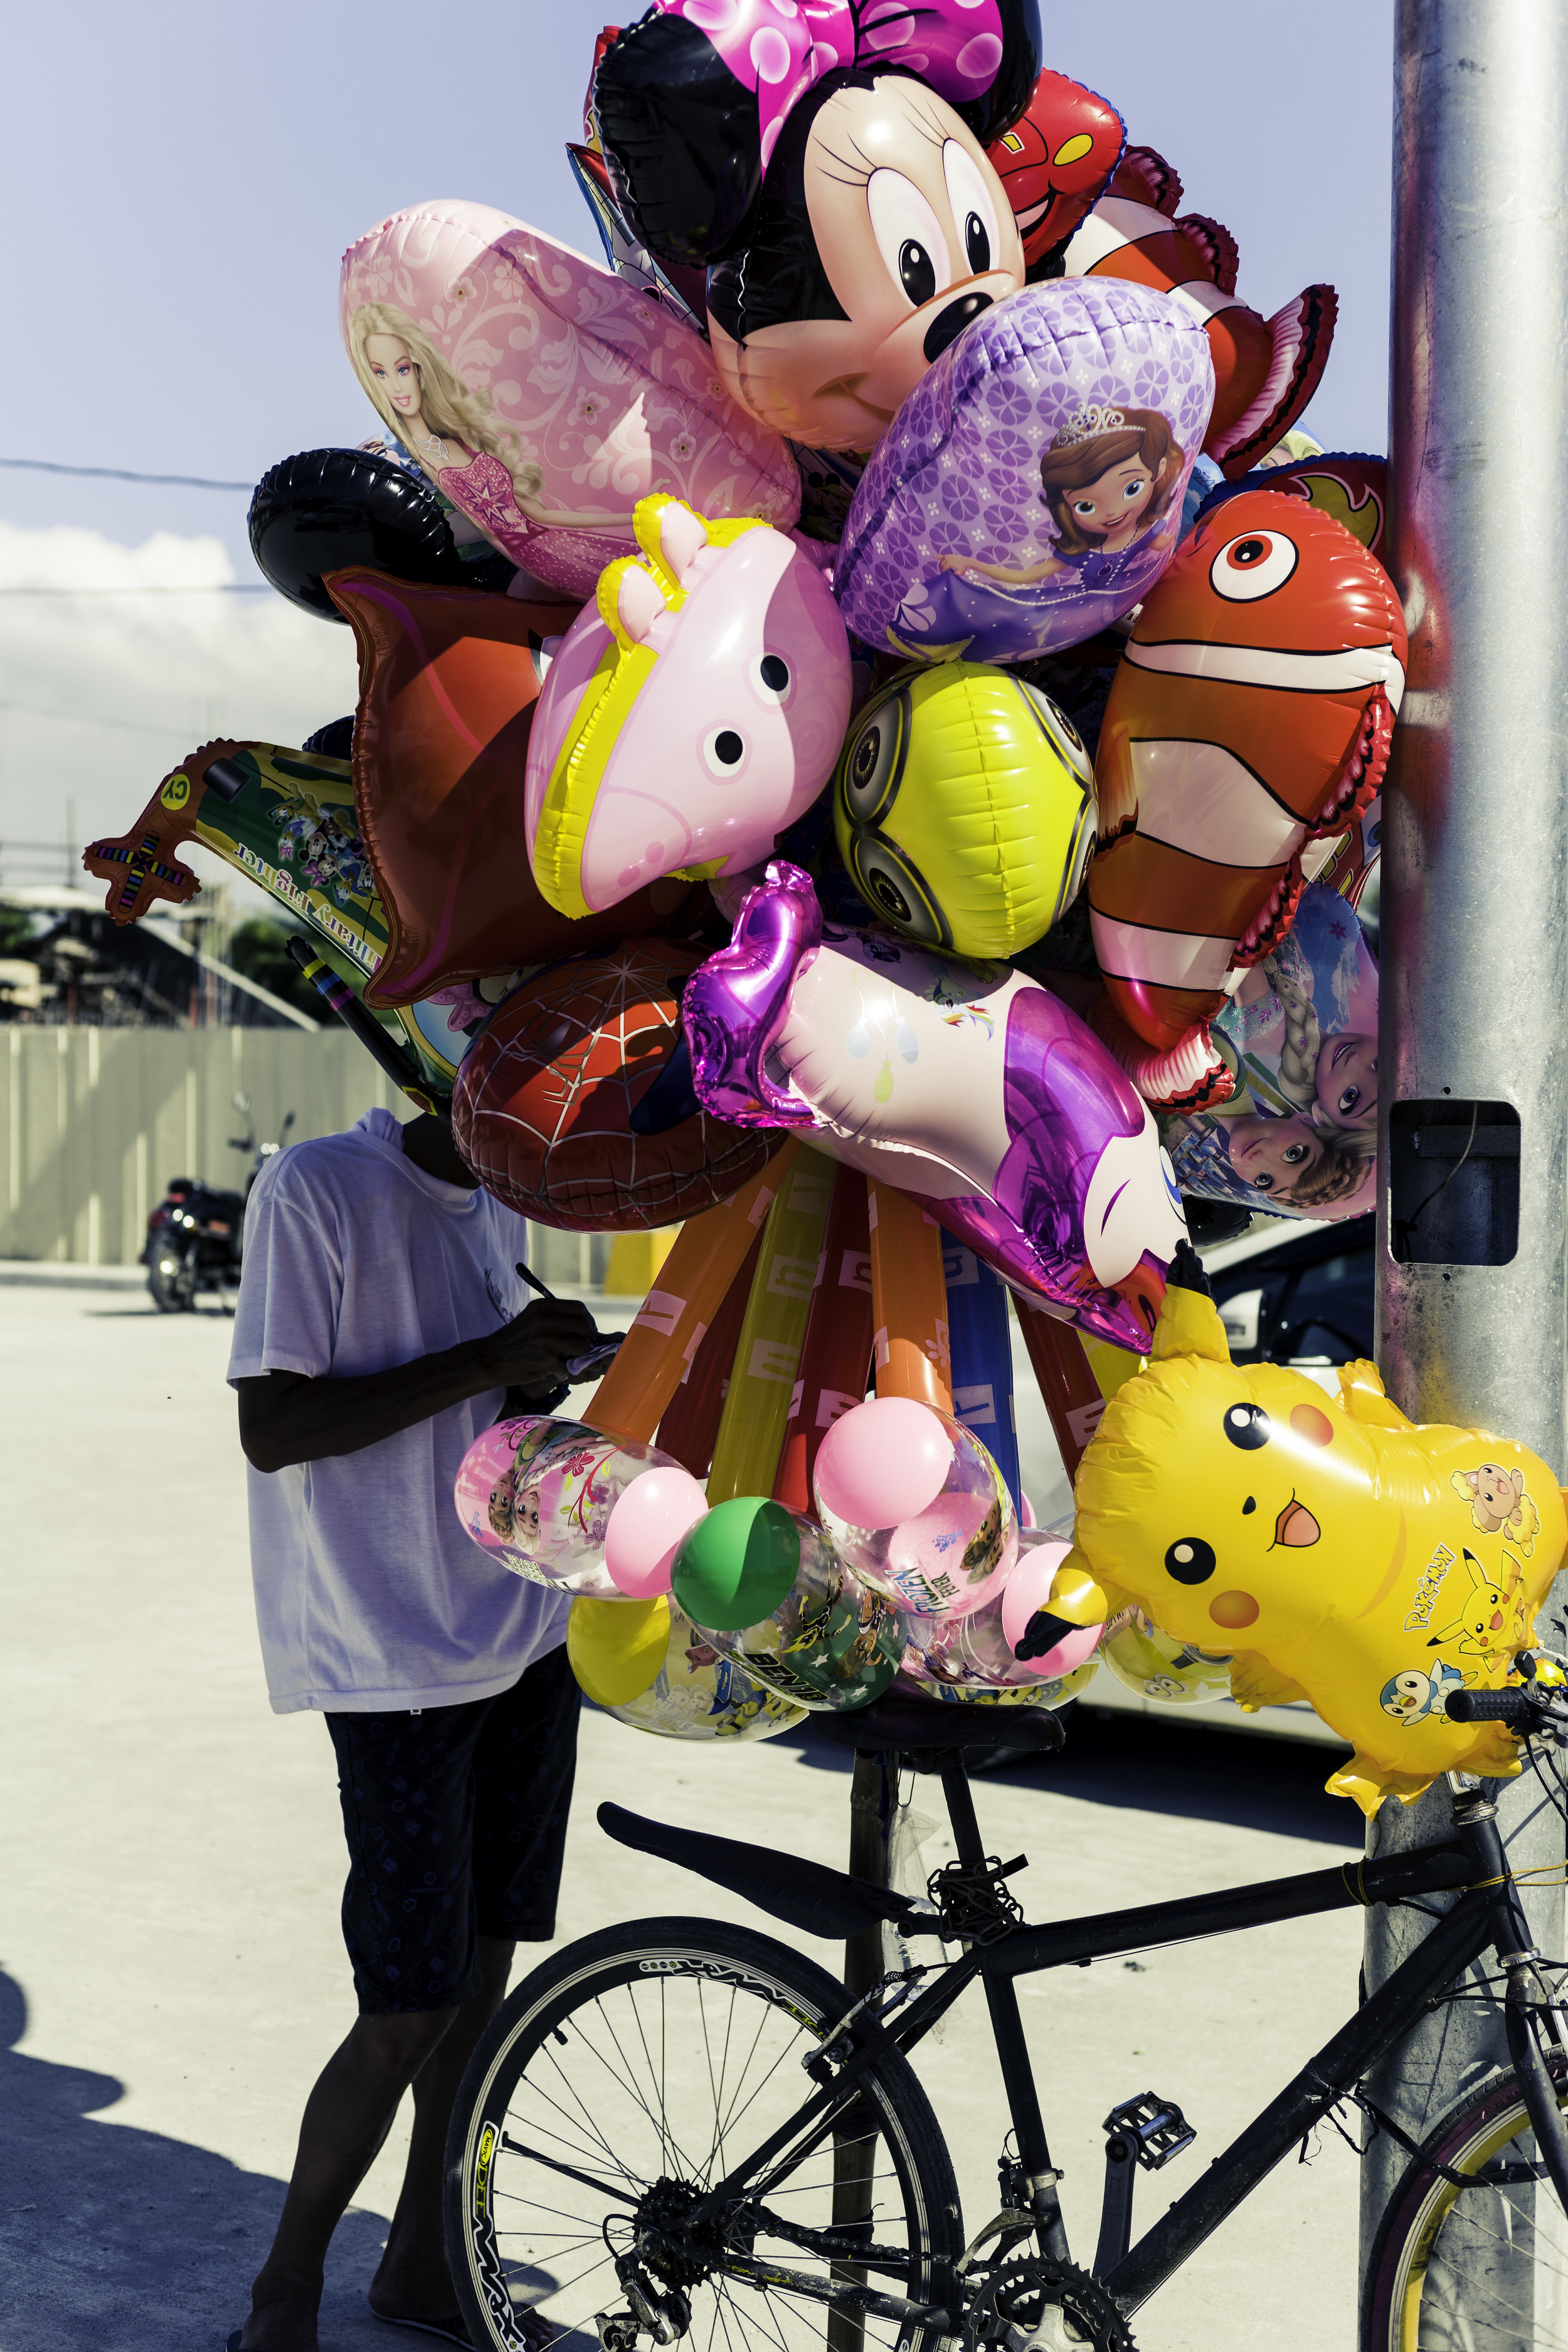 Balloon-Street-Vendor.jpg